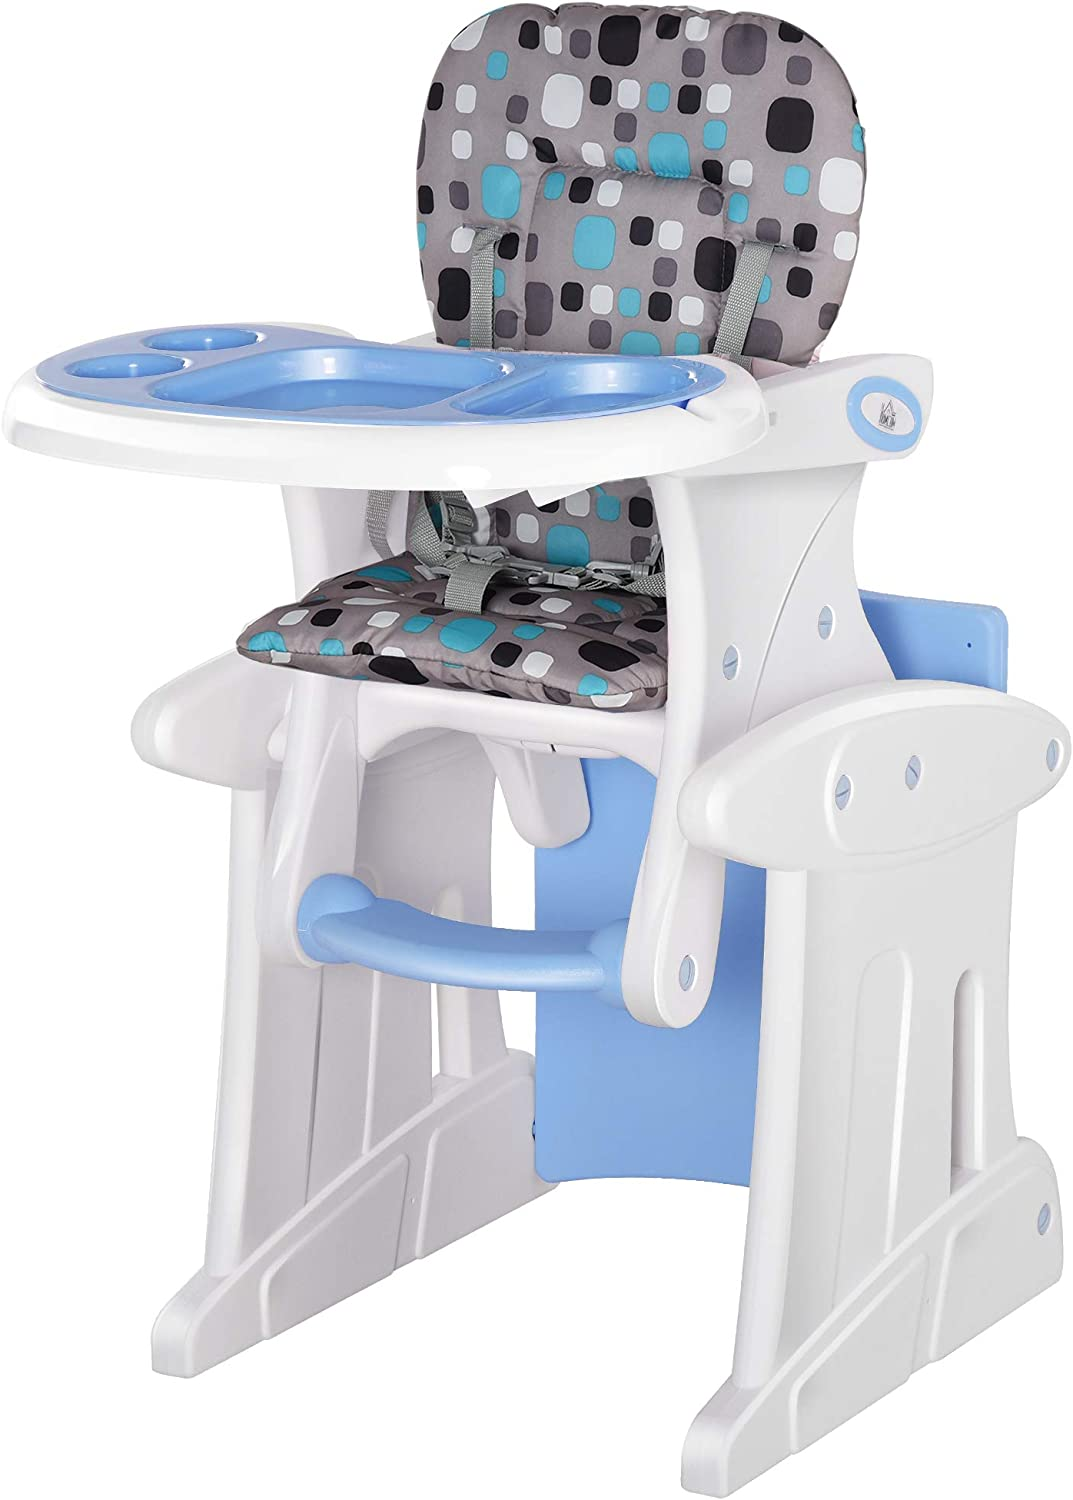 HOMCOM 3 in 1 Convertible Baby High Chair Toddler Table